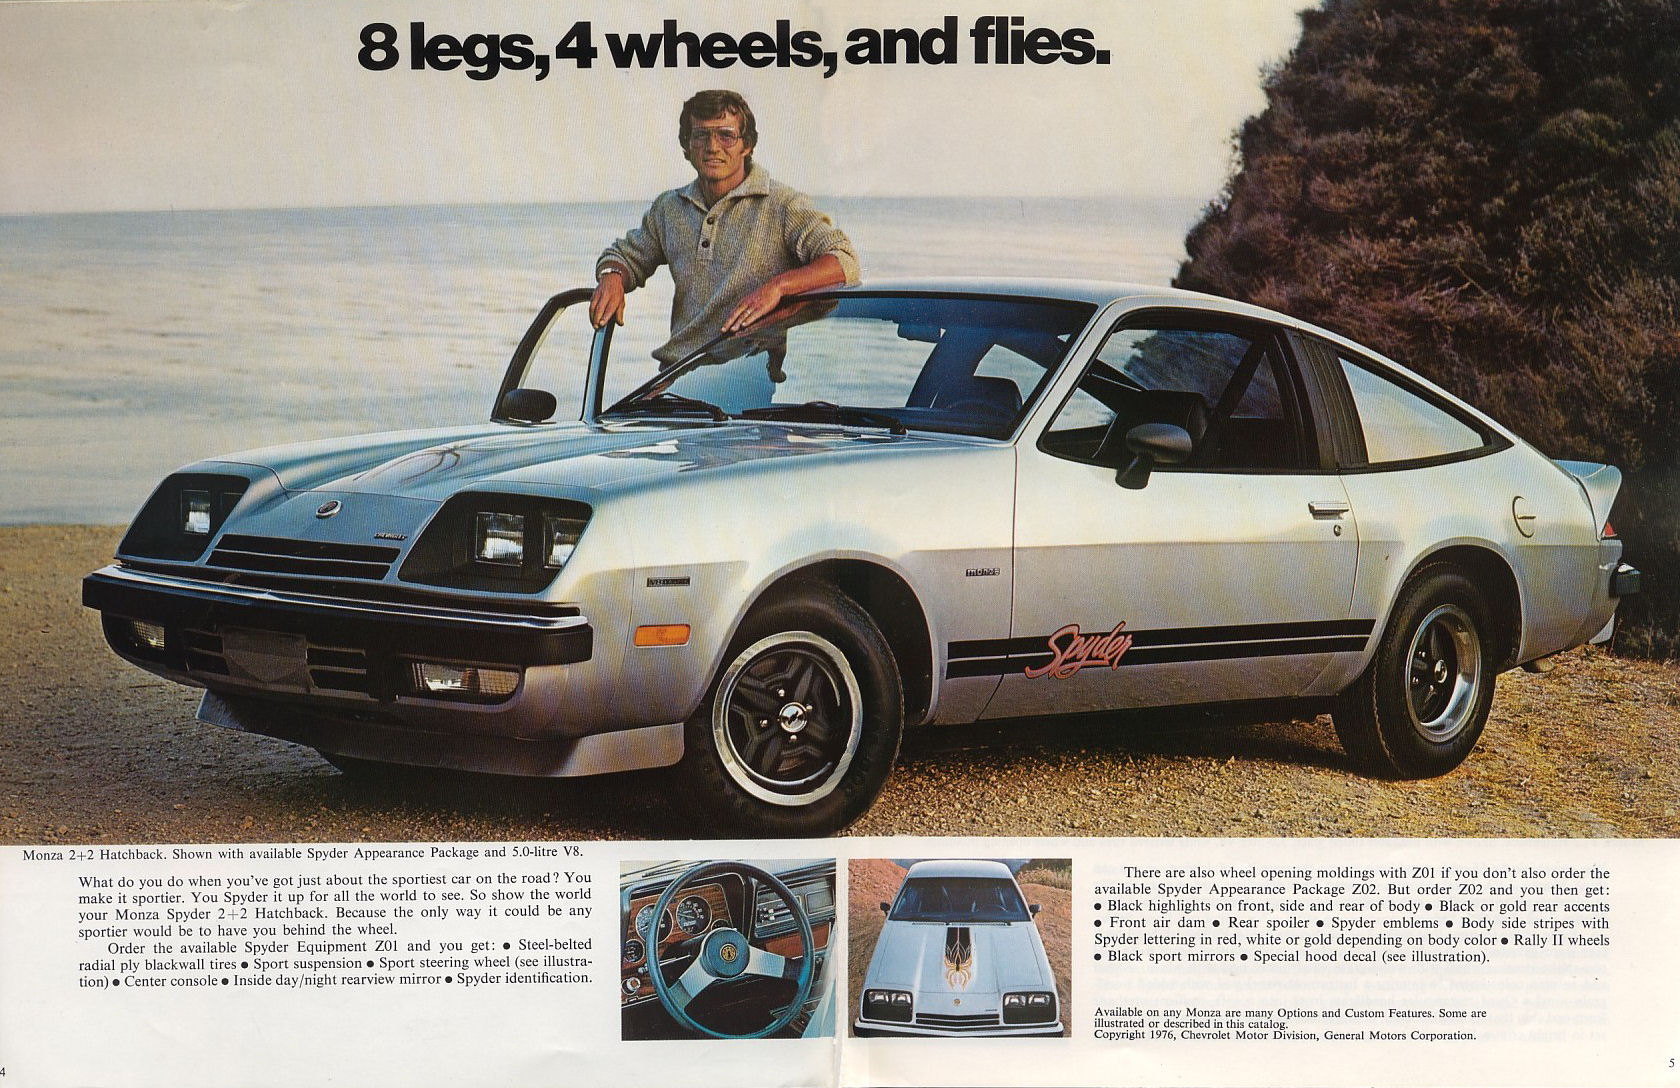 All Chevy 1977 chevrolet monza : 100+ [ Chevrolet Monza Spyder ] | Chevrolet Monza Review And ...